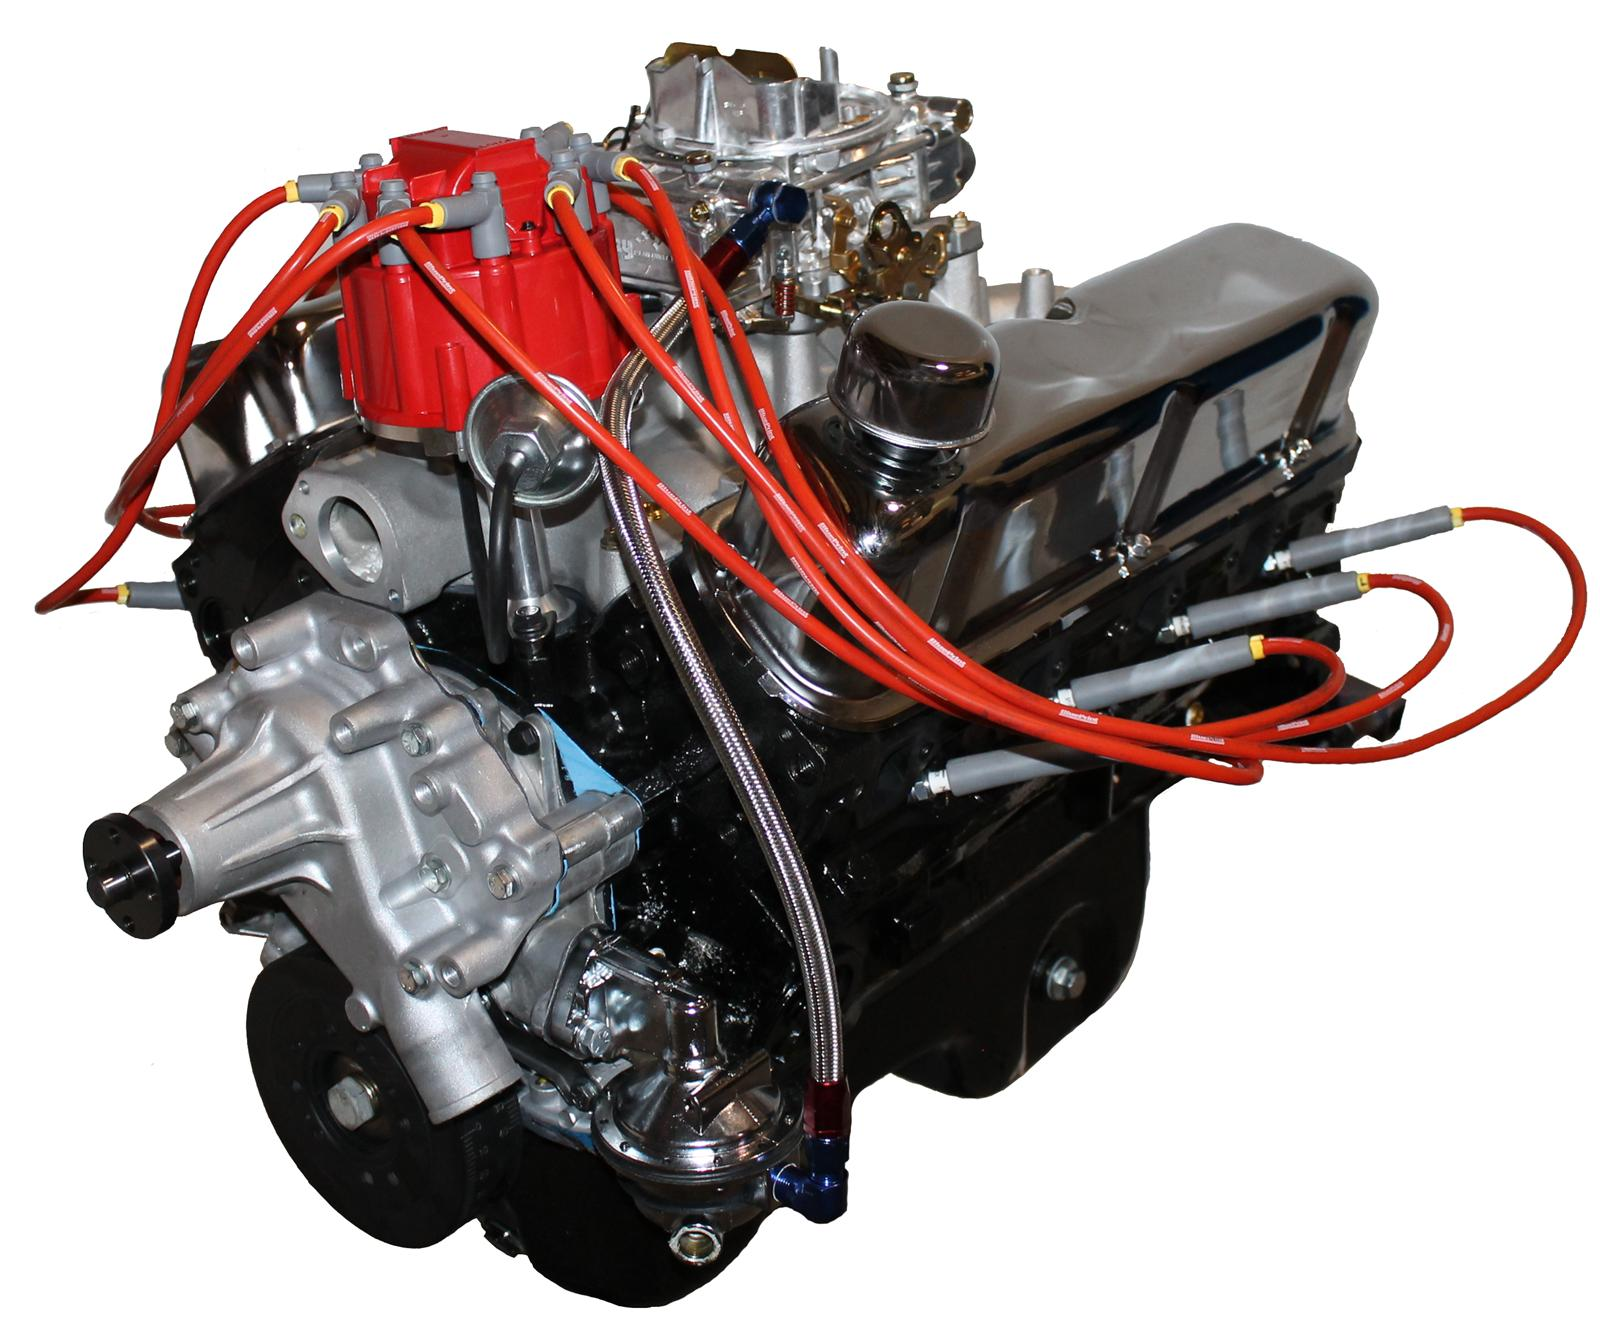 Blueprint engines ford 347 stroker 330hp value power carbureted blueprint engines ford 347 stroker 330hp value power carbureted crate engines bp3472ctc free shipping on orders over 99 at summit racing malvernweather Images